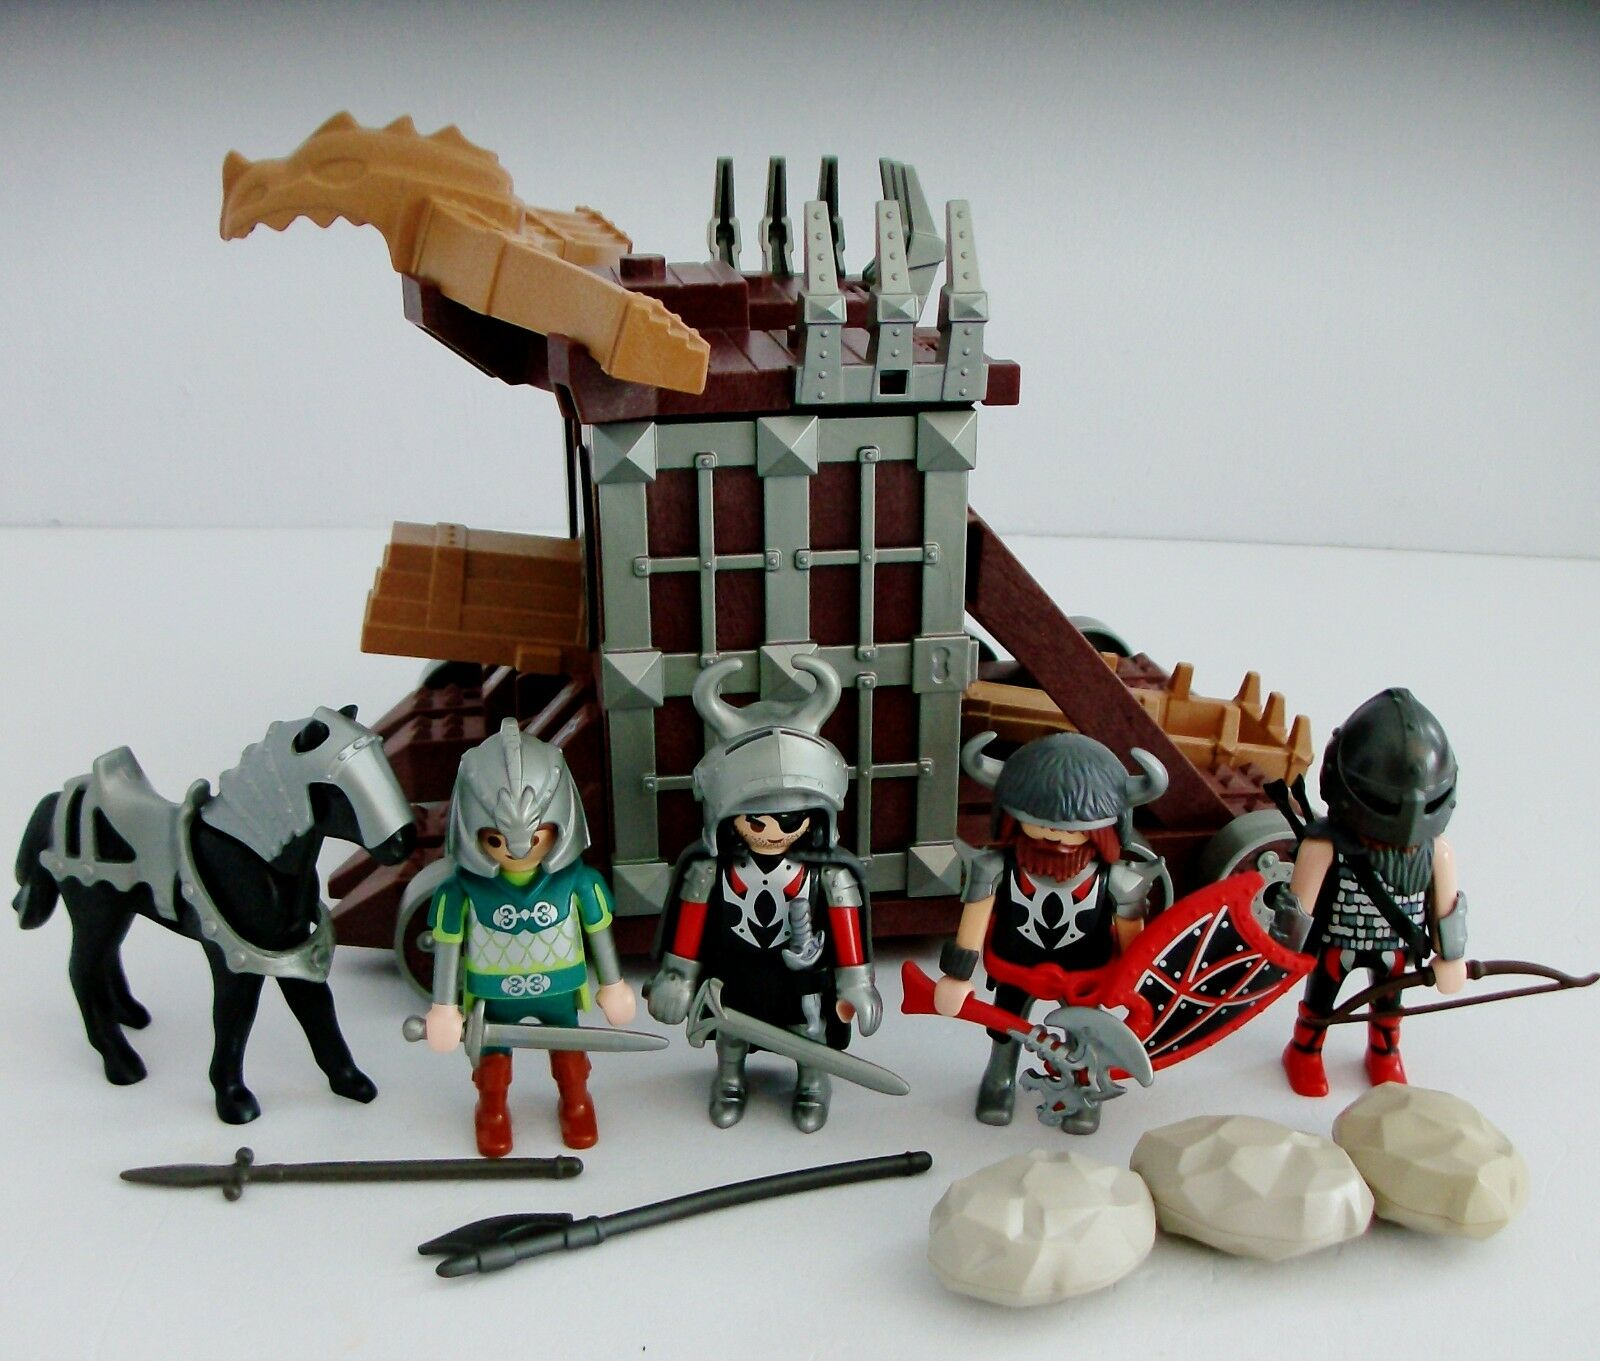 Playmobil 4837 Giant Catapult with Cell & 4 Knight Figures